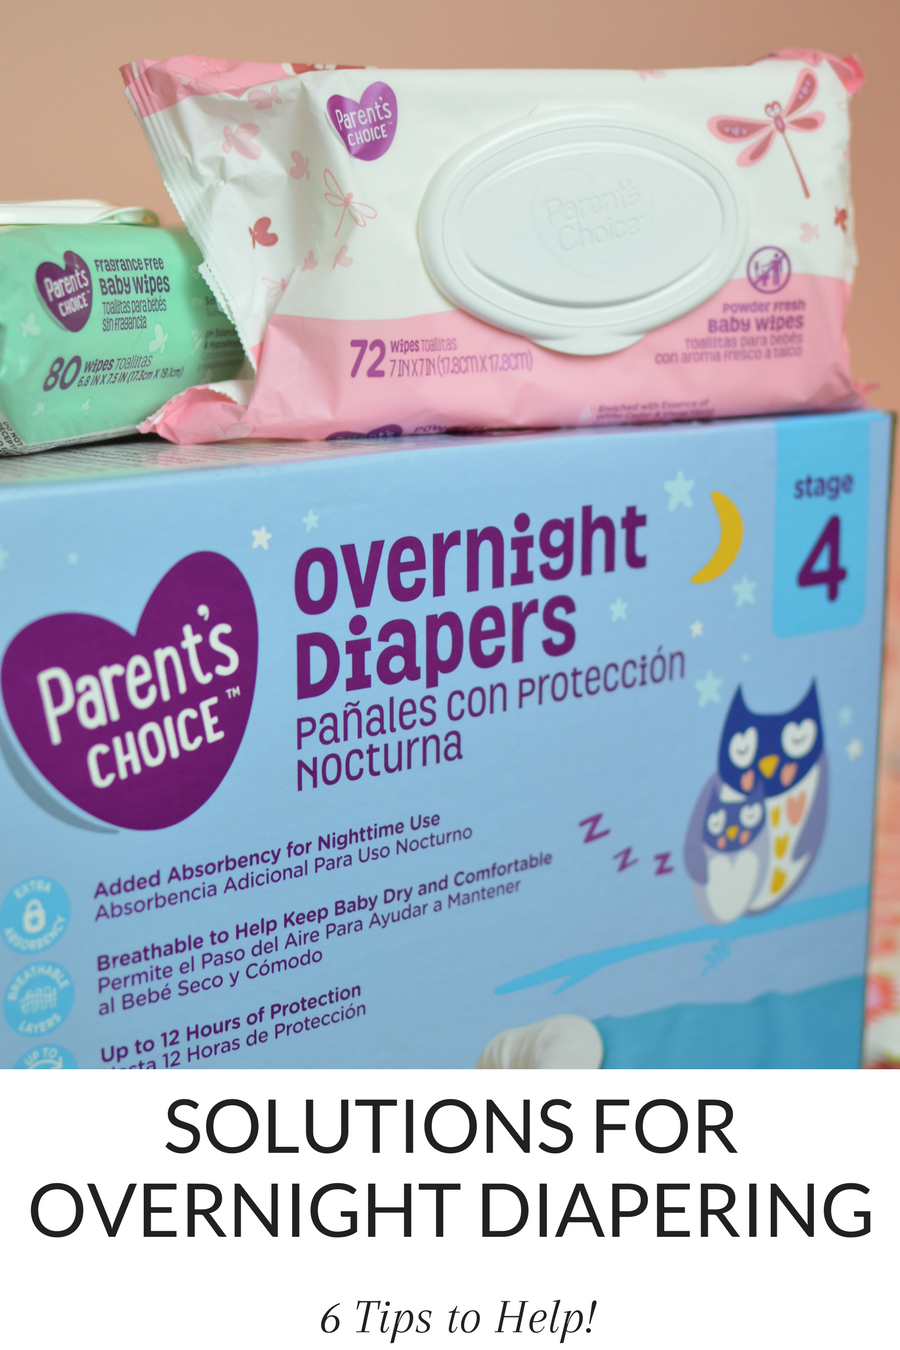 #AD Looking for solutions to diapering overnight? It gets more challenging as your littles start sleeping longer at night, but these tips will help - including a great way to save while still getting the best value for your money! #diapers #savemoney #ParentsChoice